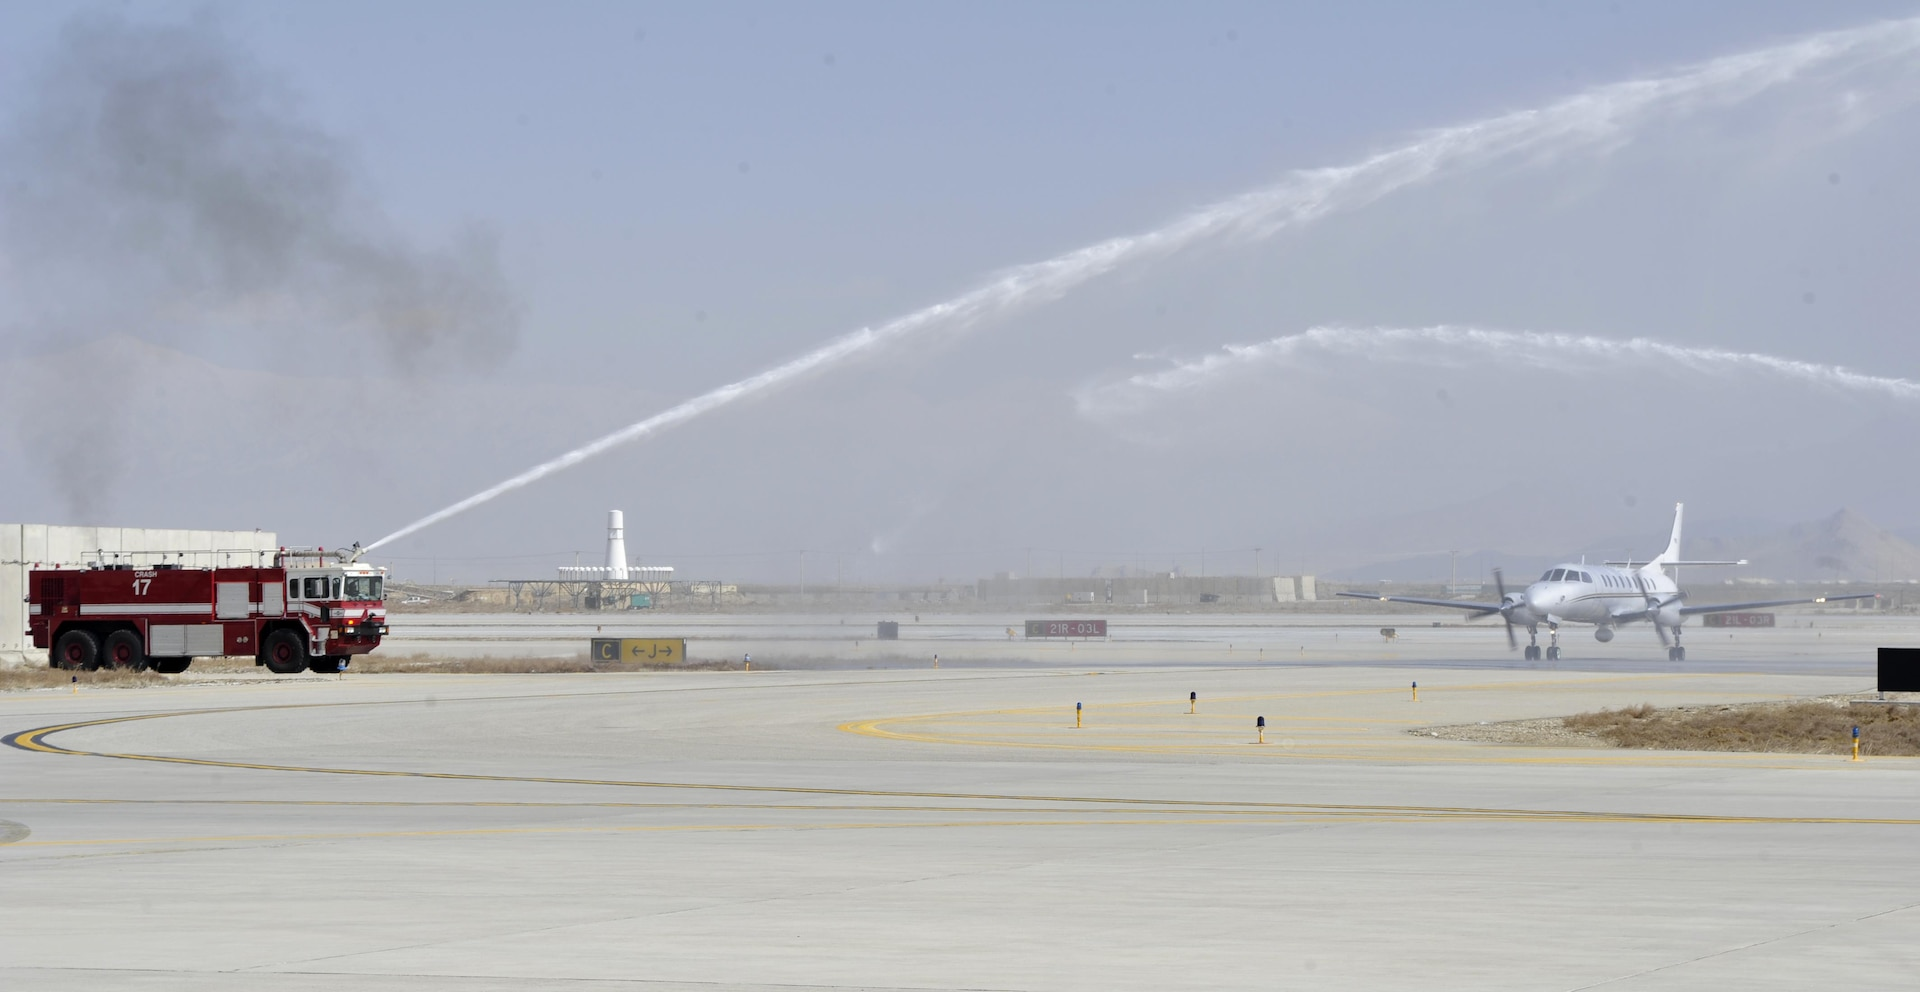 BAGRAM AIRFIELD, Afghanistan (Mar. 17, 2017) - Water plumes greet and honor the final flight of Chief Warrant Officer 4 Joshua Wade Martin as he taxis his C-26 Metroliner to the ramp.  Martin is a 28-year Arkansas Army National Guard veteran who will redeploy soon and retire from military service this summer.  The water salute is an aviation tradition to celebrate a momentous occasion in aviation history.  Photo by Bob Harrison, U.S. Forces Afghanistan Public Affairs.